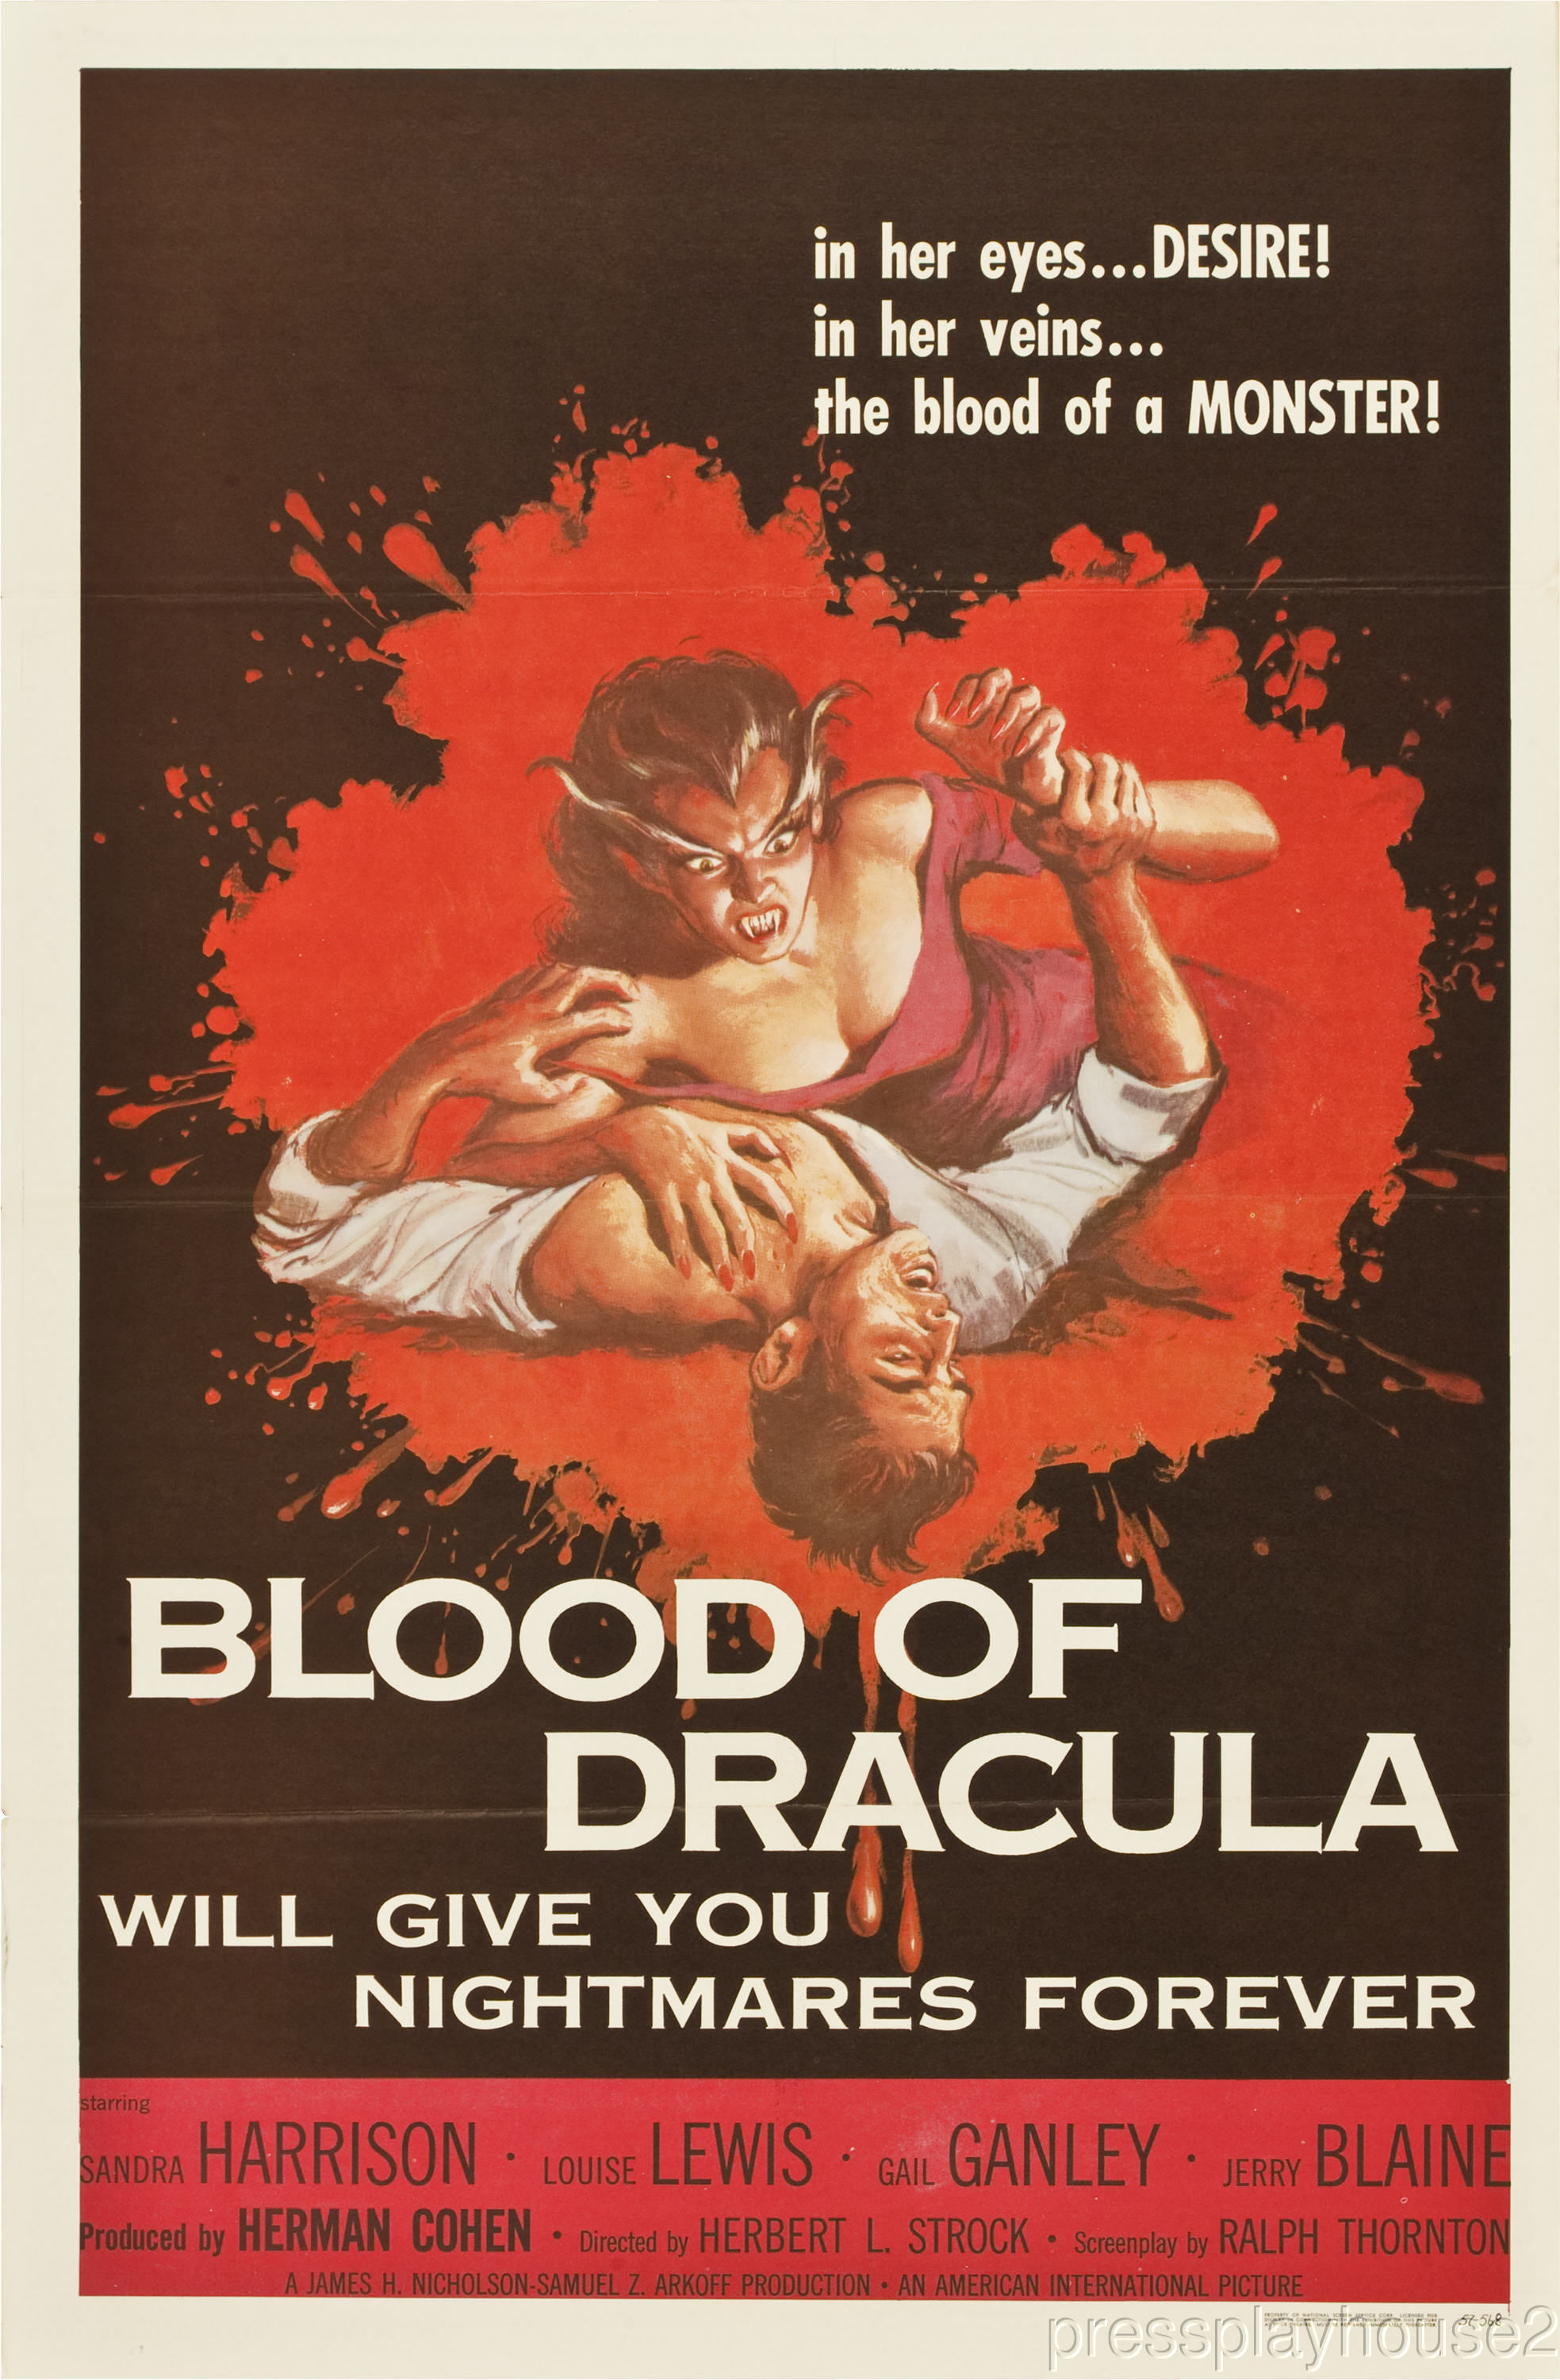 Blood of Dracula: DVD, 1957, Sandra Harrison, Powerful 50s Teen Horror Gem! product photo